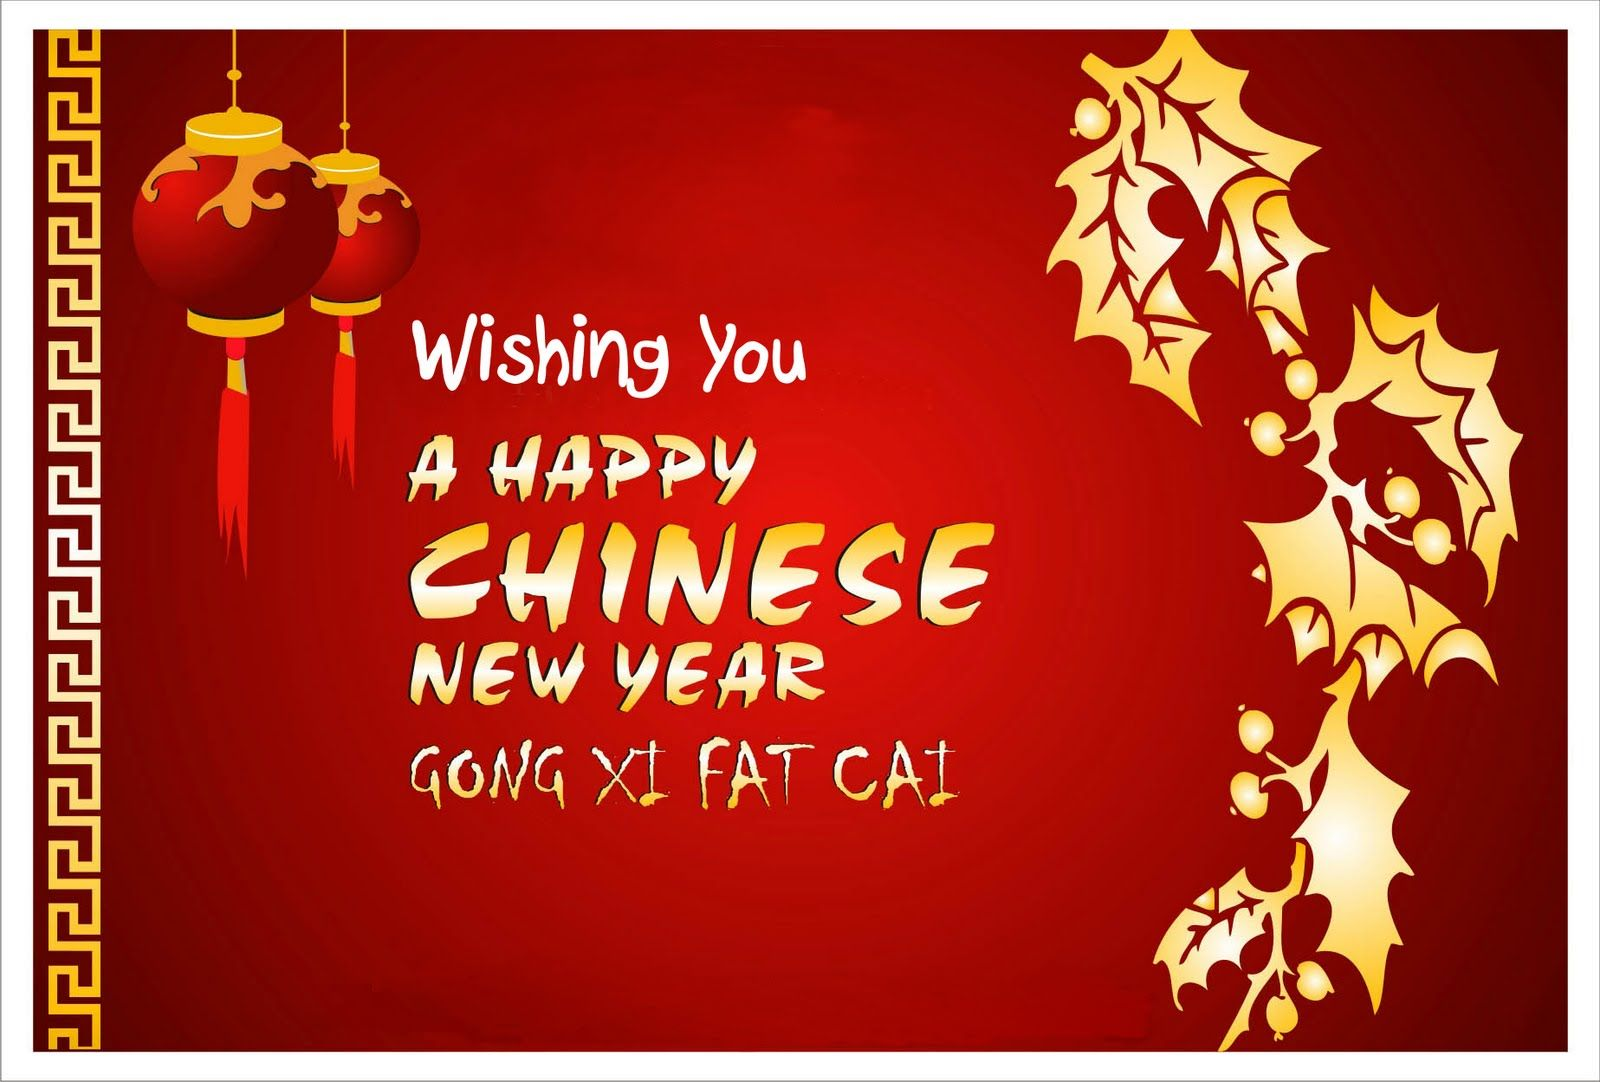 Happy Chinese New Year 2015 Free Online Happy Chinese New Year